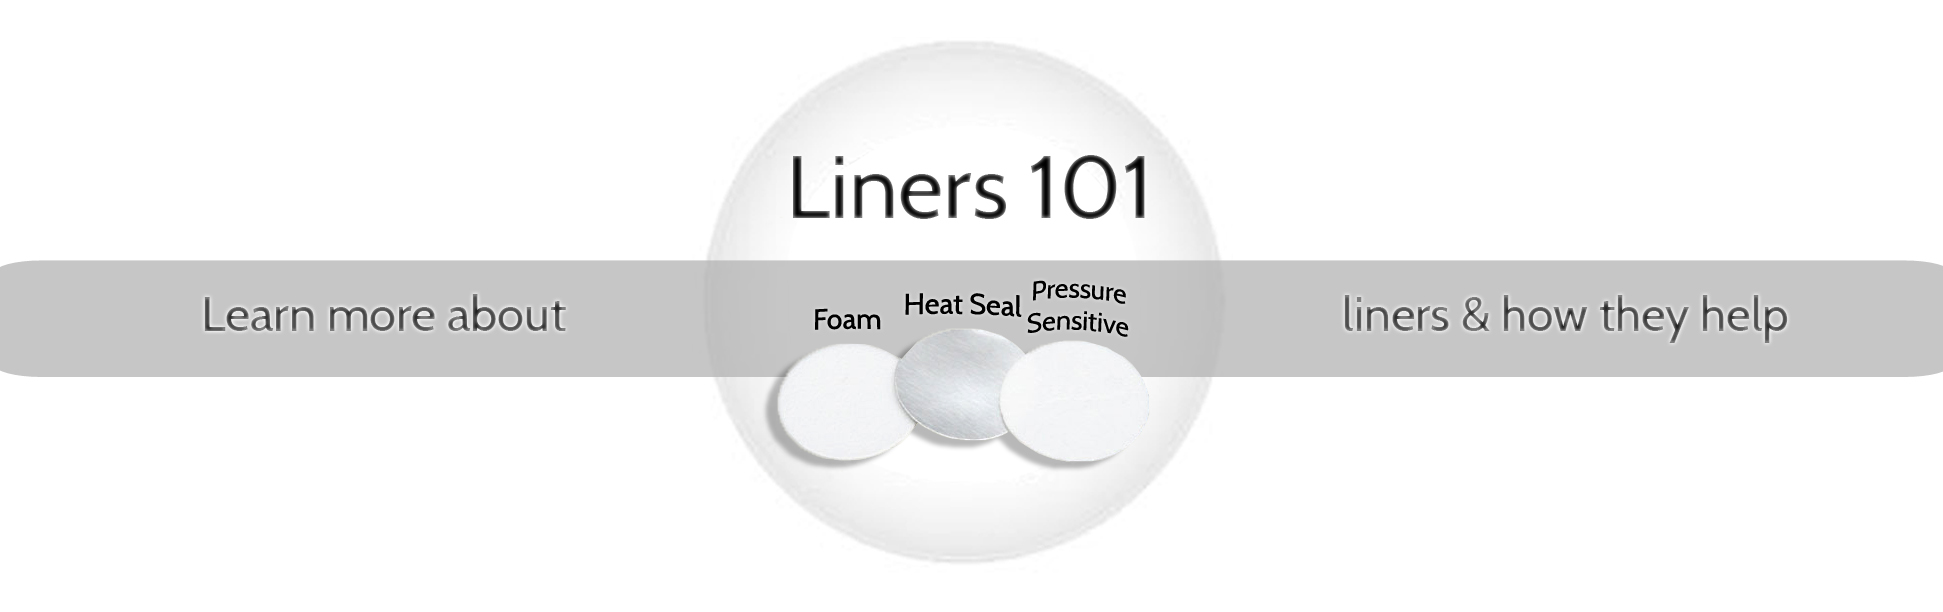 new-liners-101-banner-1-edited-13-addon-page.jpg